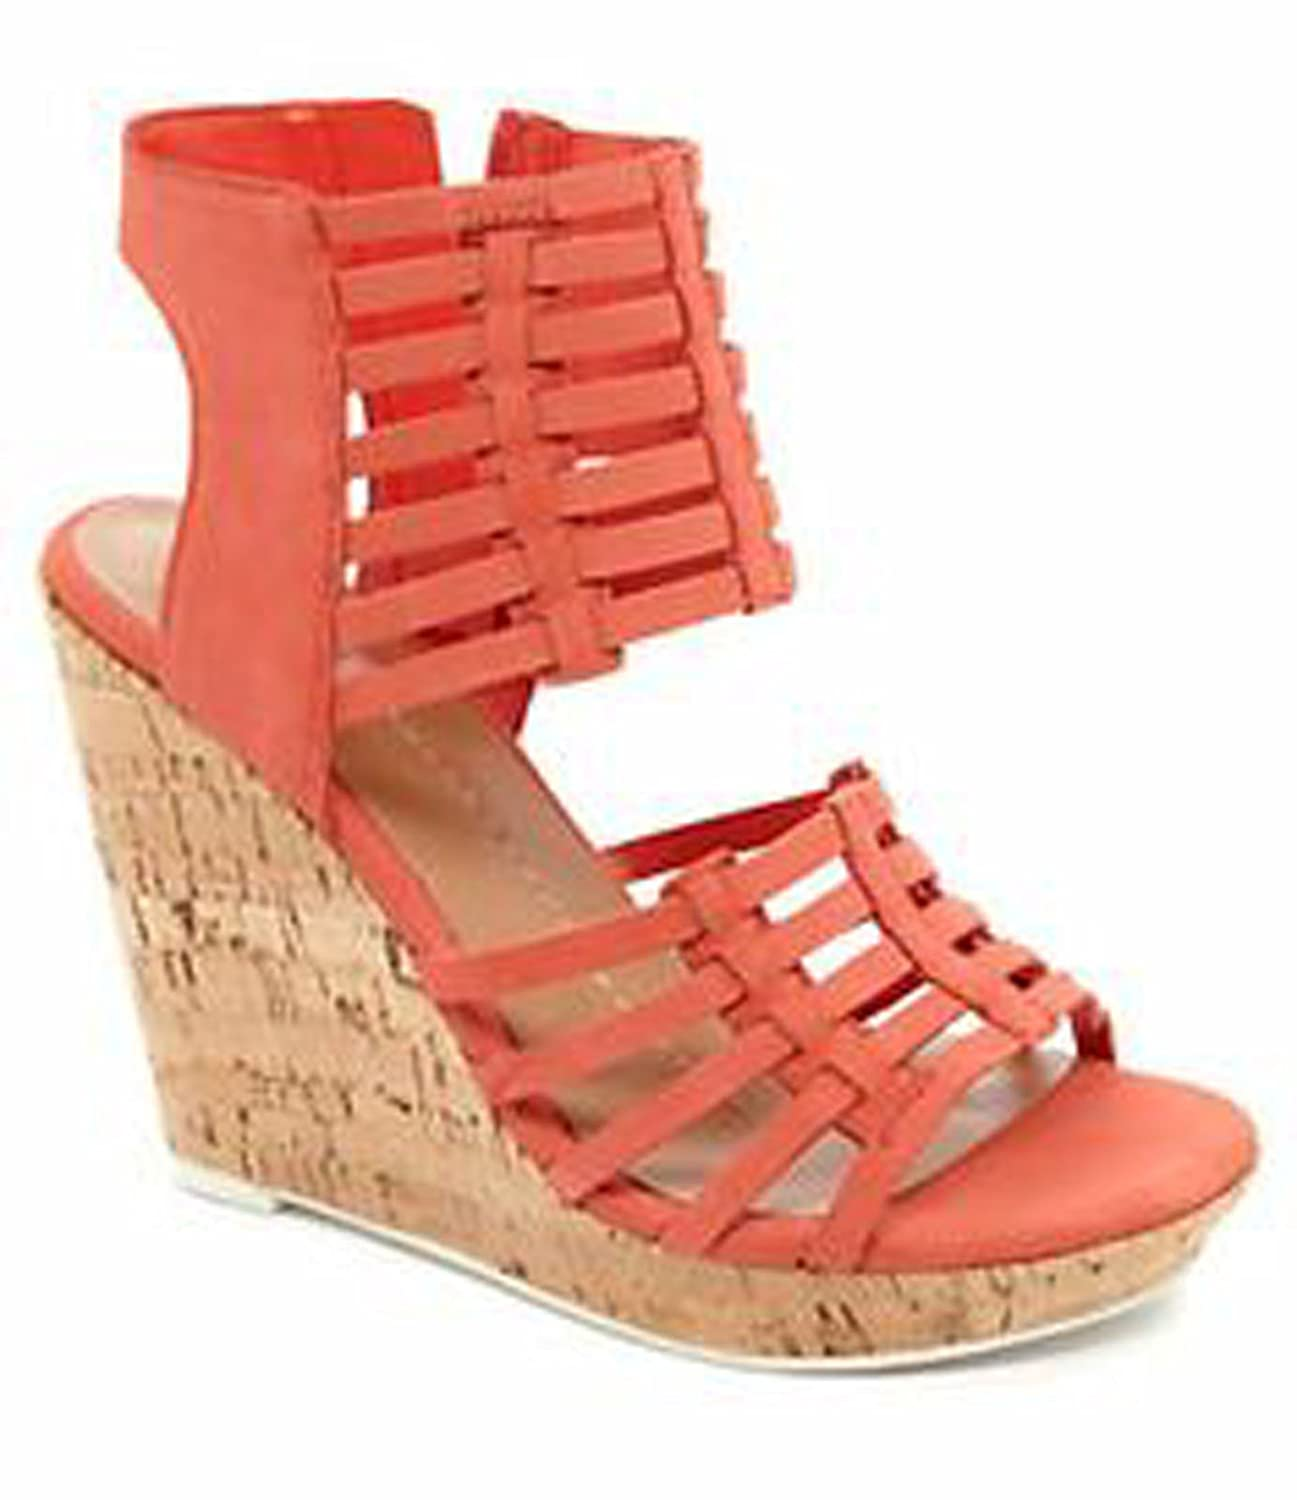 DV by Dolce Vita Women's Tila Wedge Sandal B00G5NPE84 9.5 B(M) US|Coral Leather